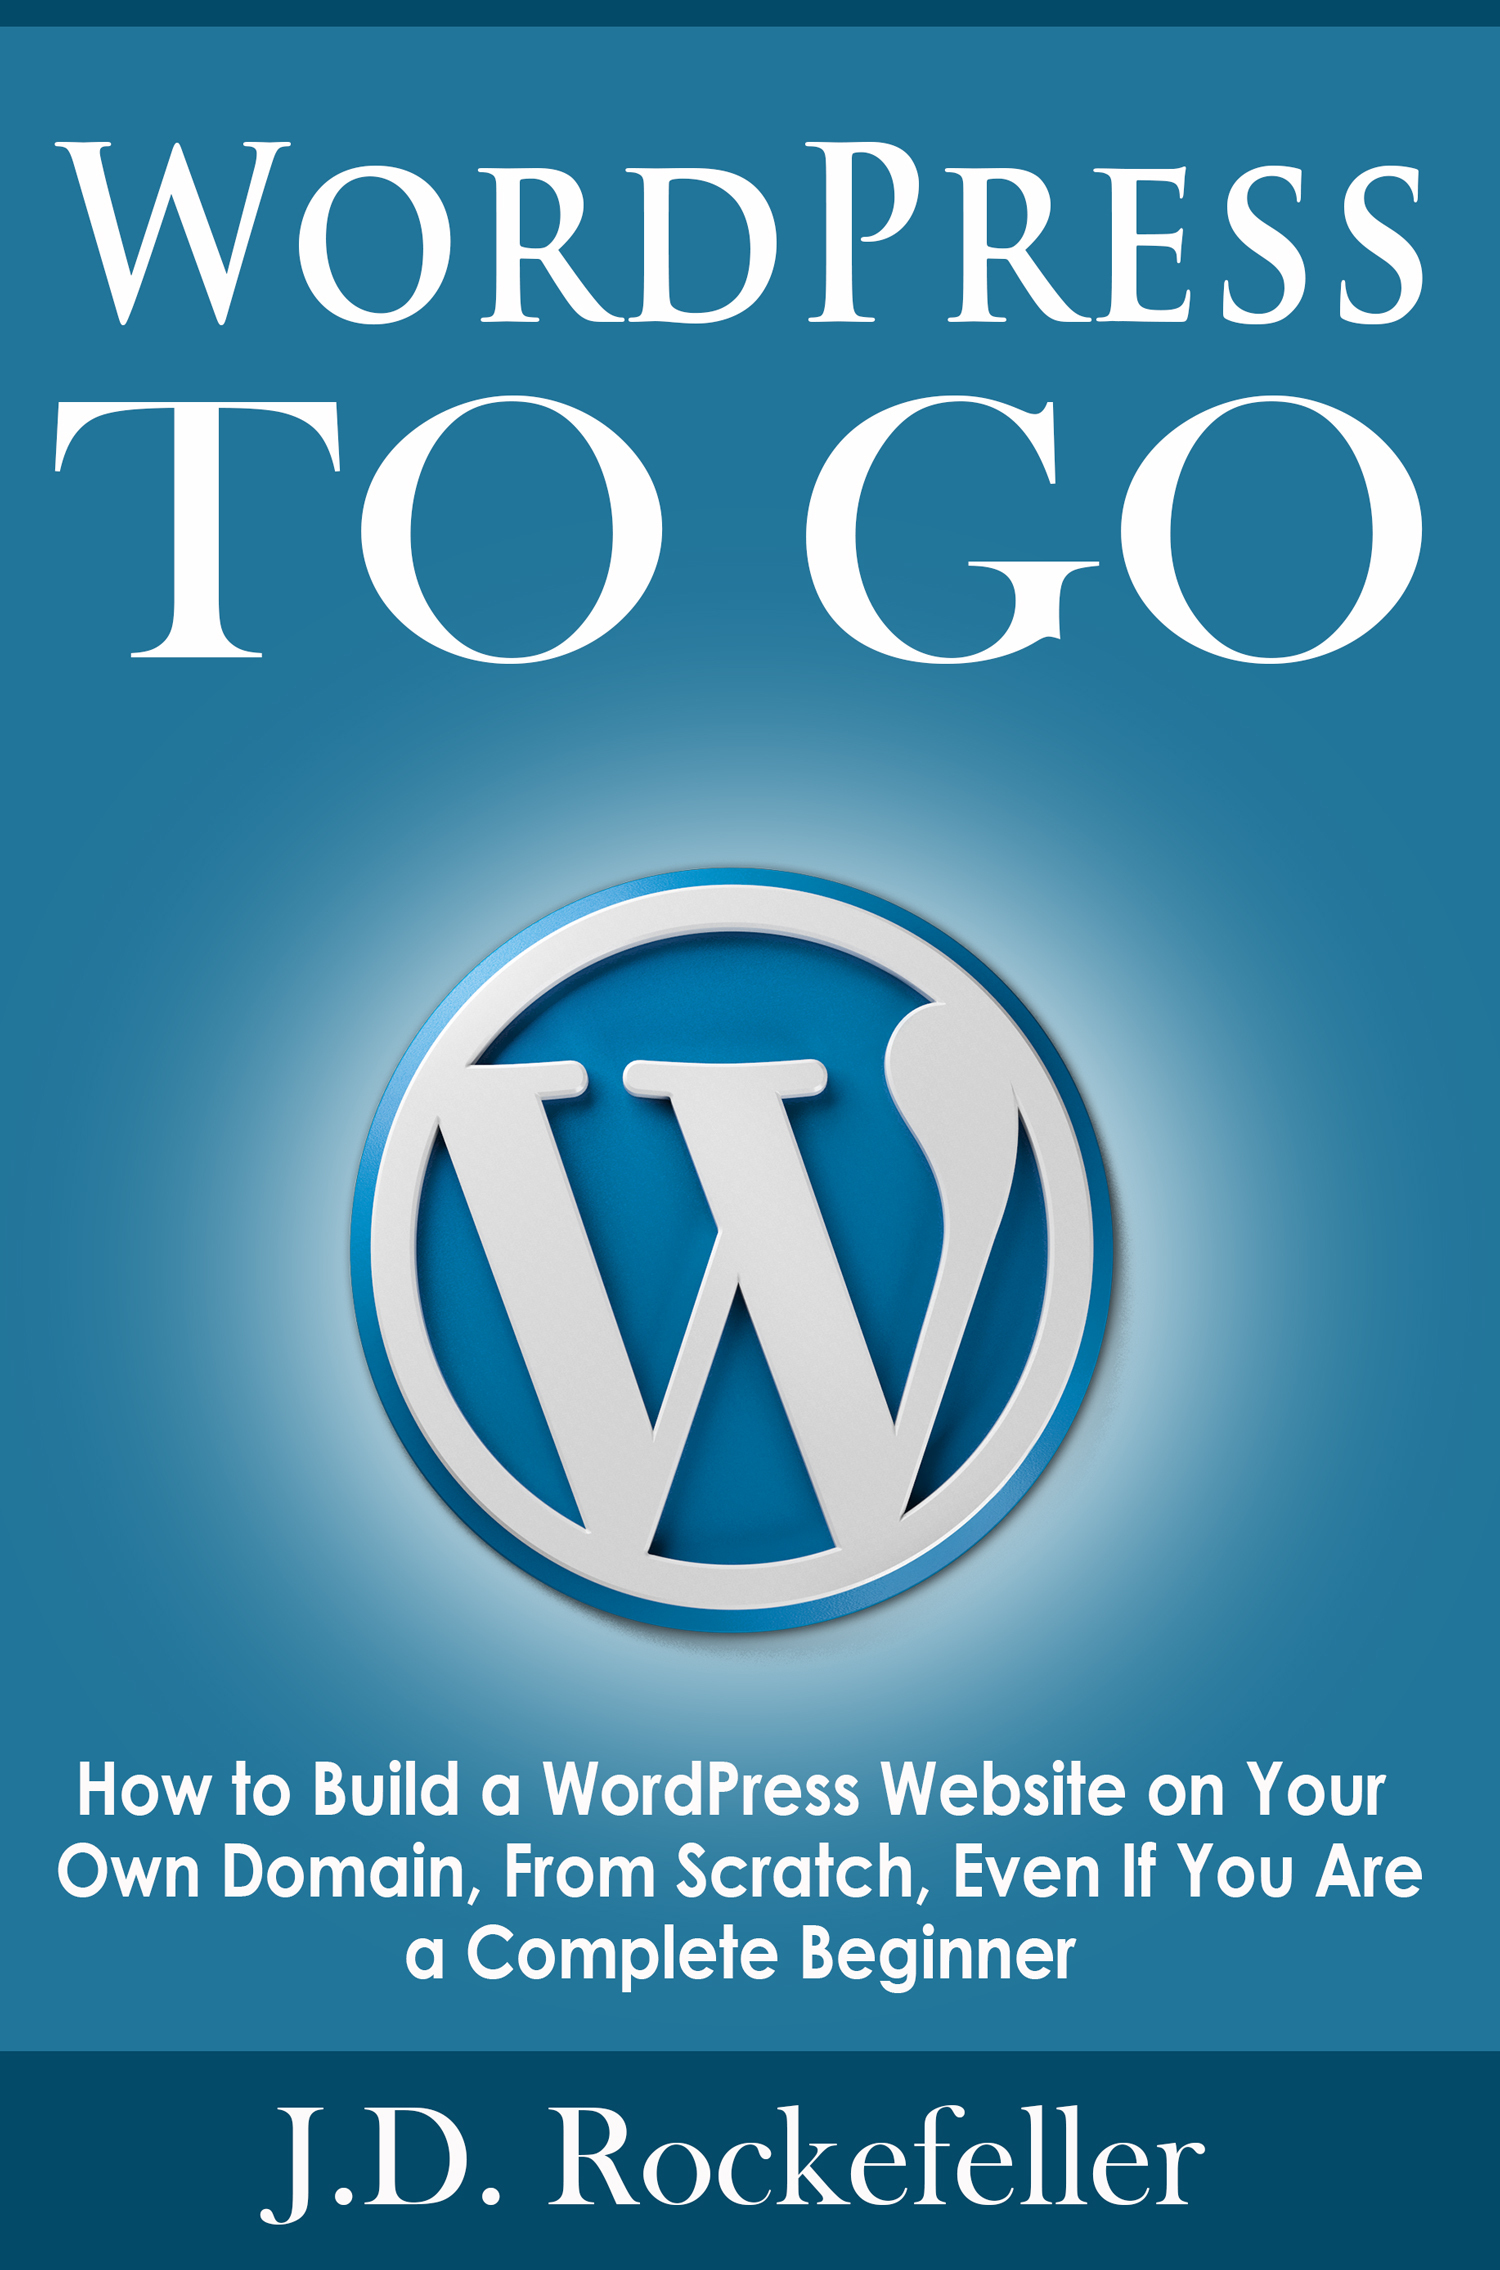 WordPress to Go: How to Build a WordPress Website on Your Own Domain, From Scratch, Even If You Are a Complete Beginner J.D. Rockefeller